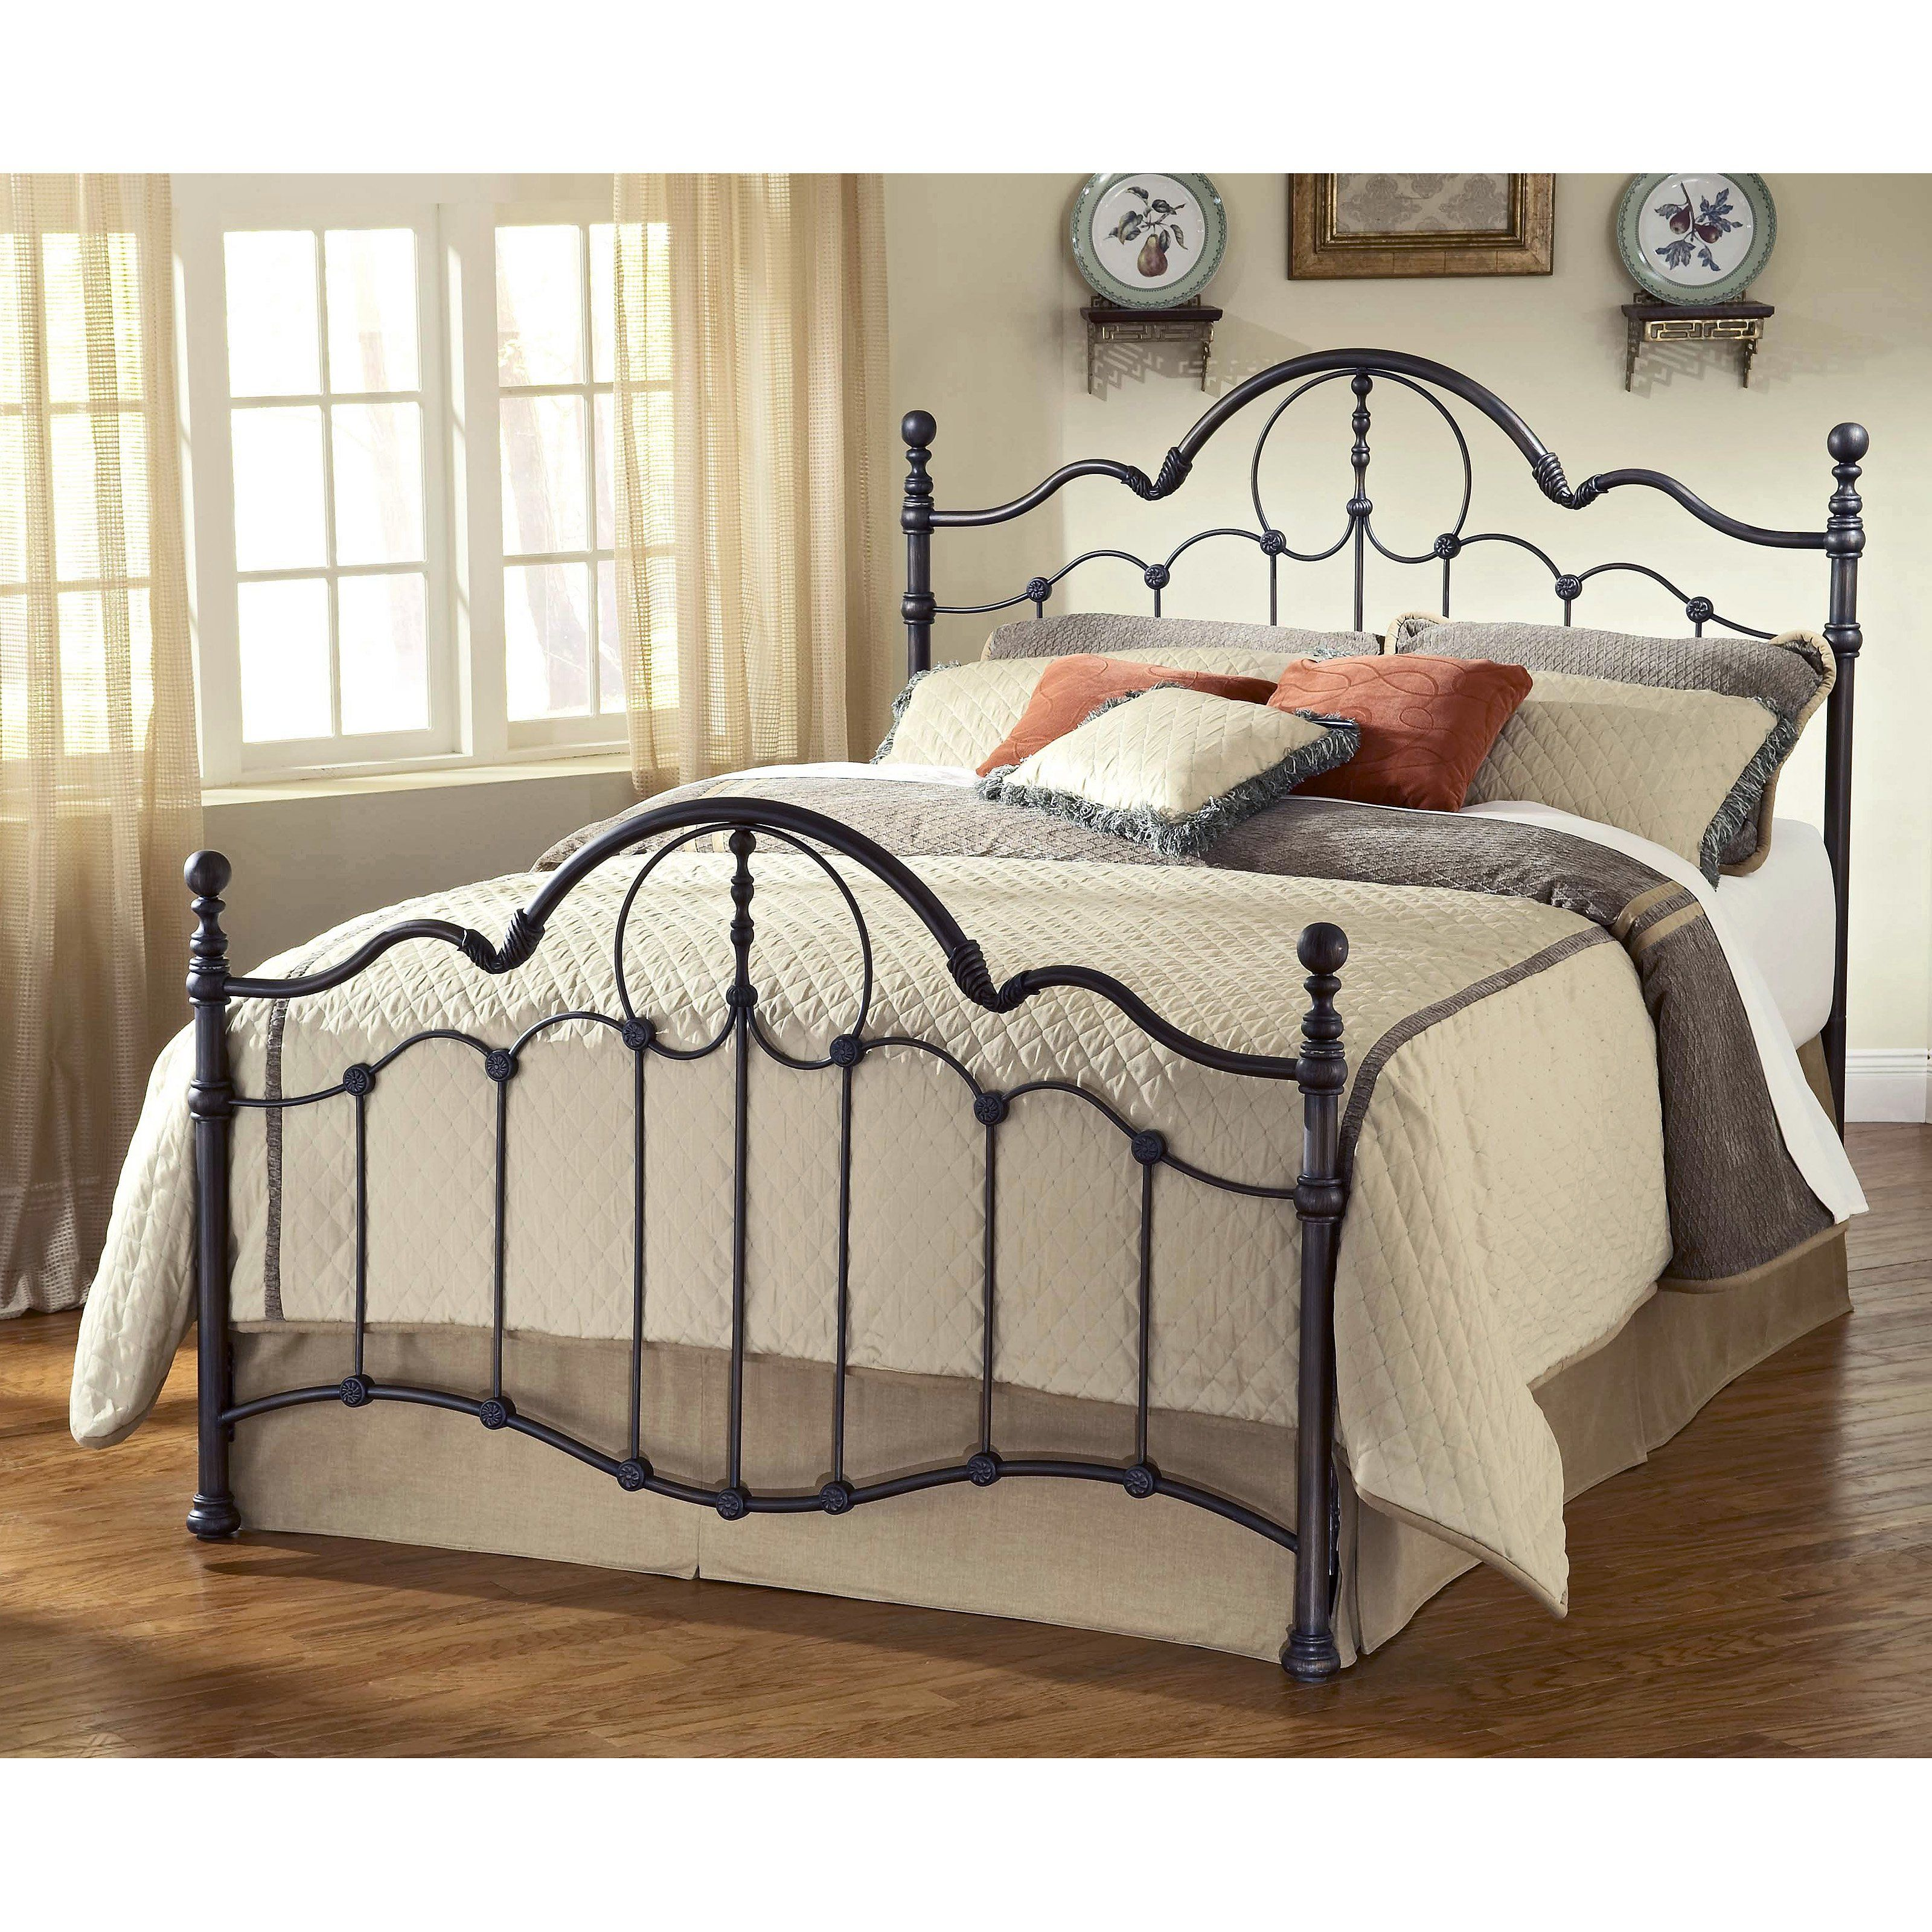 Venetian Bed Www Hayneedle Com Full Bedding Sets Hillsdale Furniture Bed Frame Sets